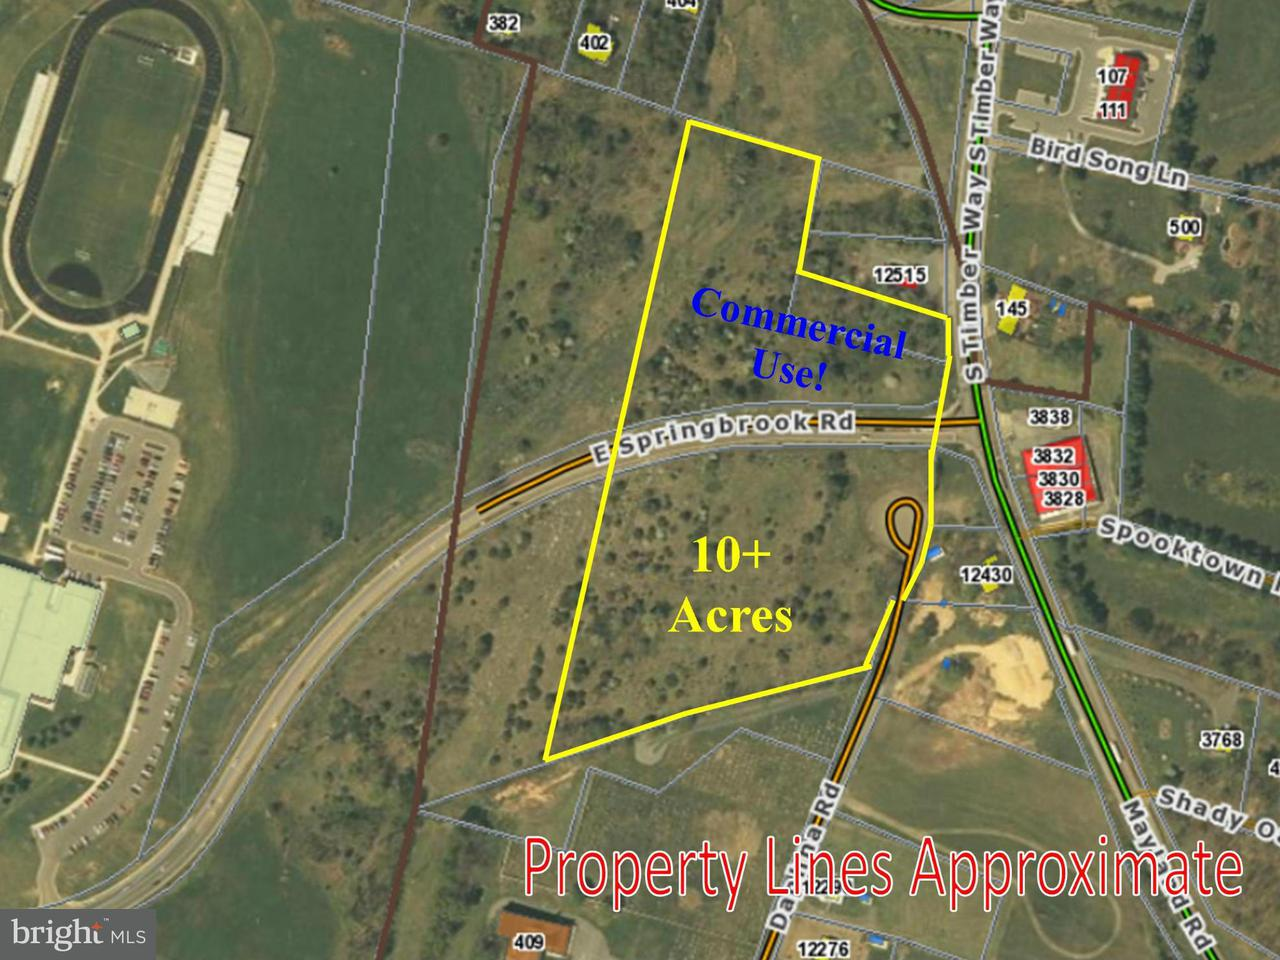 Land for Sale at 0 East Springbrook Rd Broadway, Virginia 22815 United States